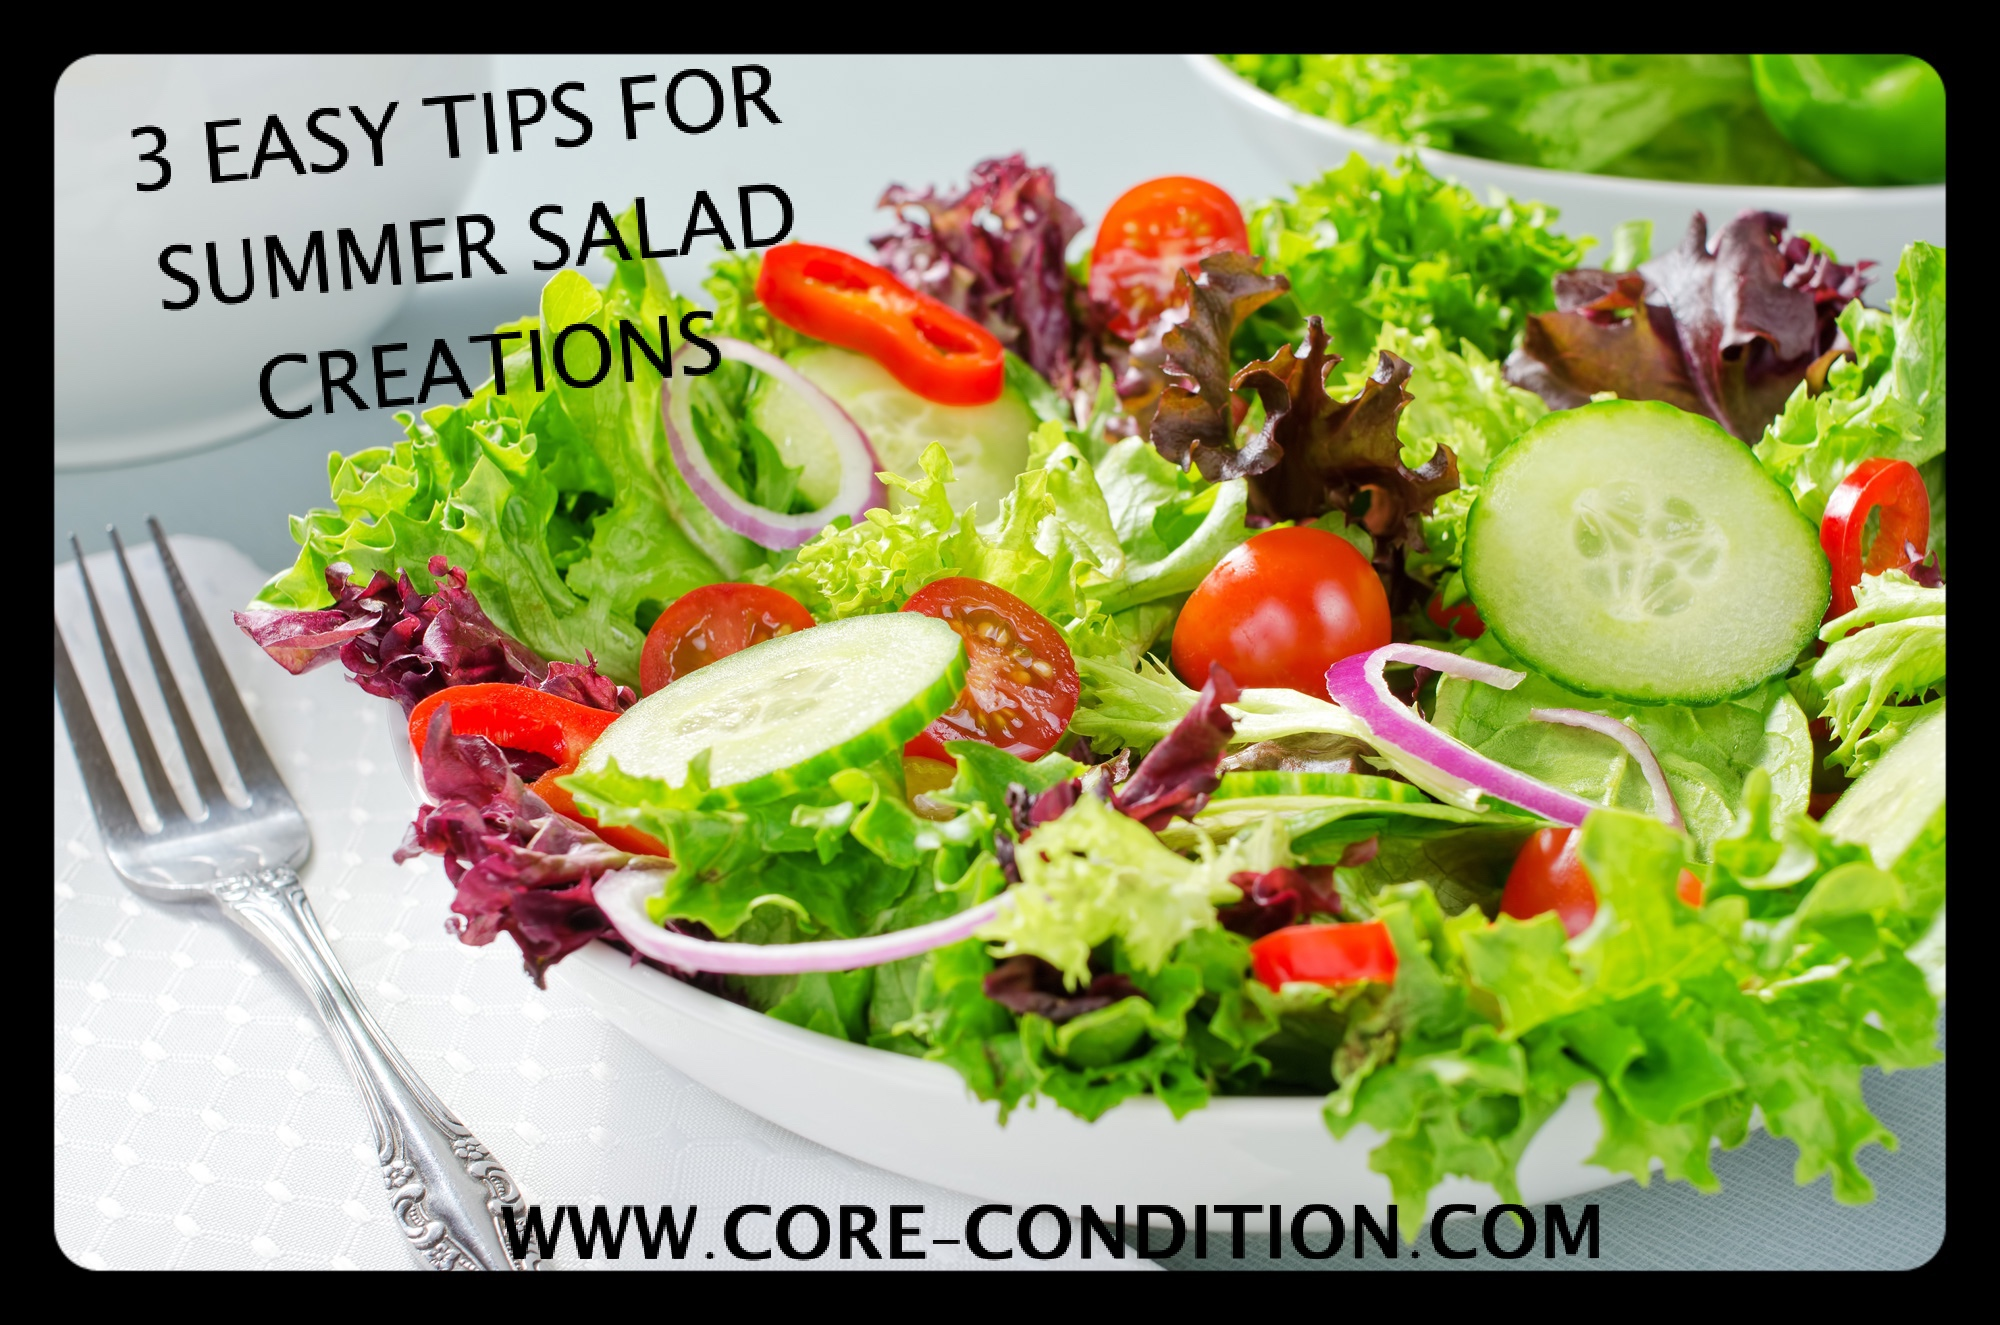 3 Tips For Easy Summer Salad Creation